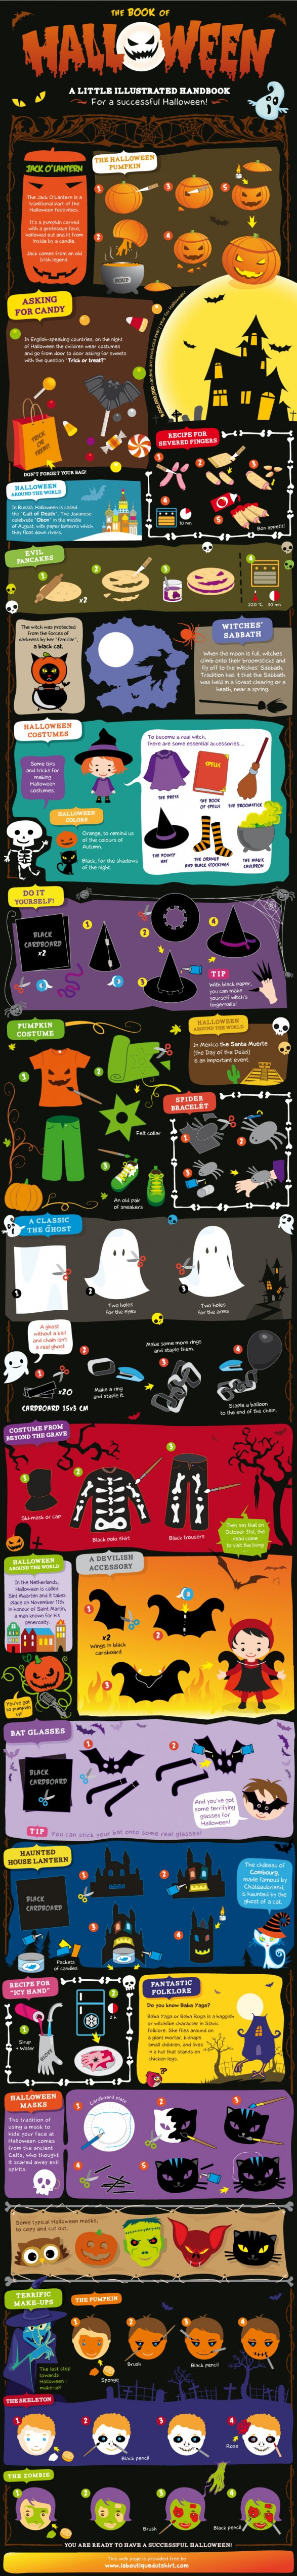 The Book of Halloween infographic on Halloween around the world ~  costume ideas and craft activities included